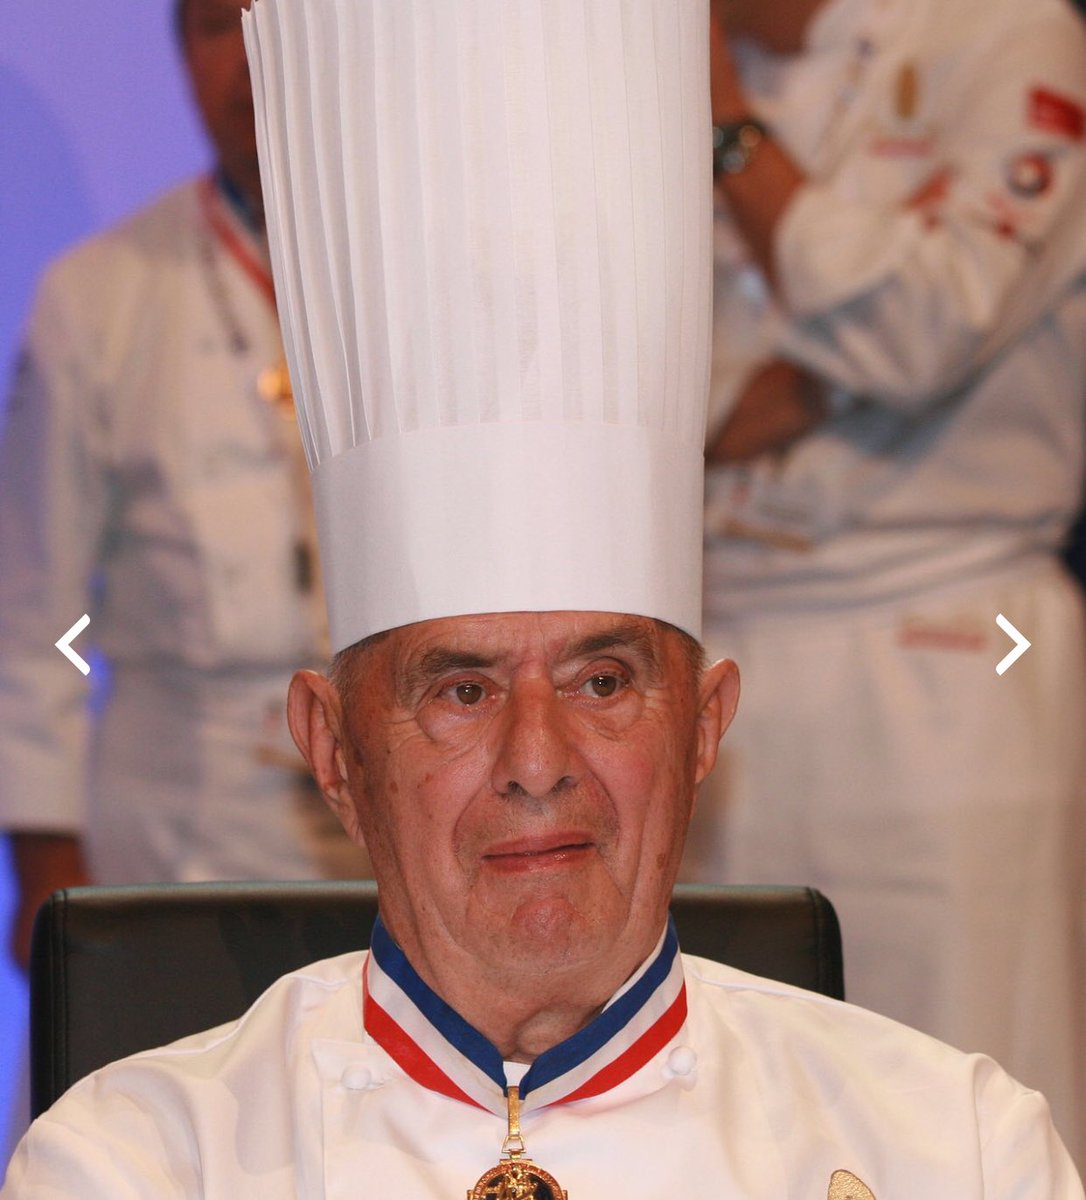 RT @jamesmartinchef: So sad to hear the greatest of them all has past . Paul Bocuse RIP https://t.co/iTgn8hrTQC